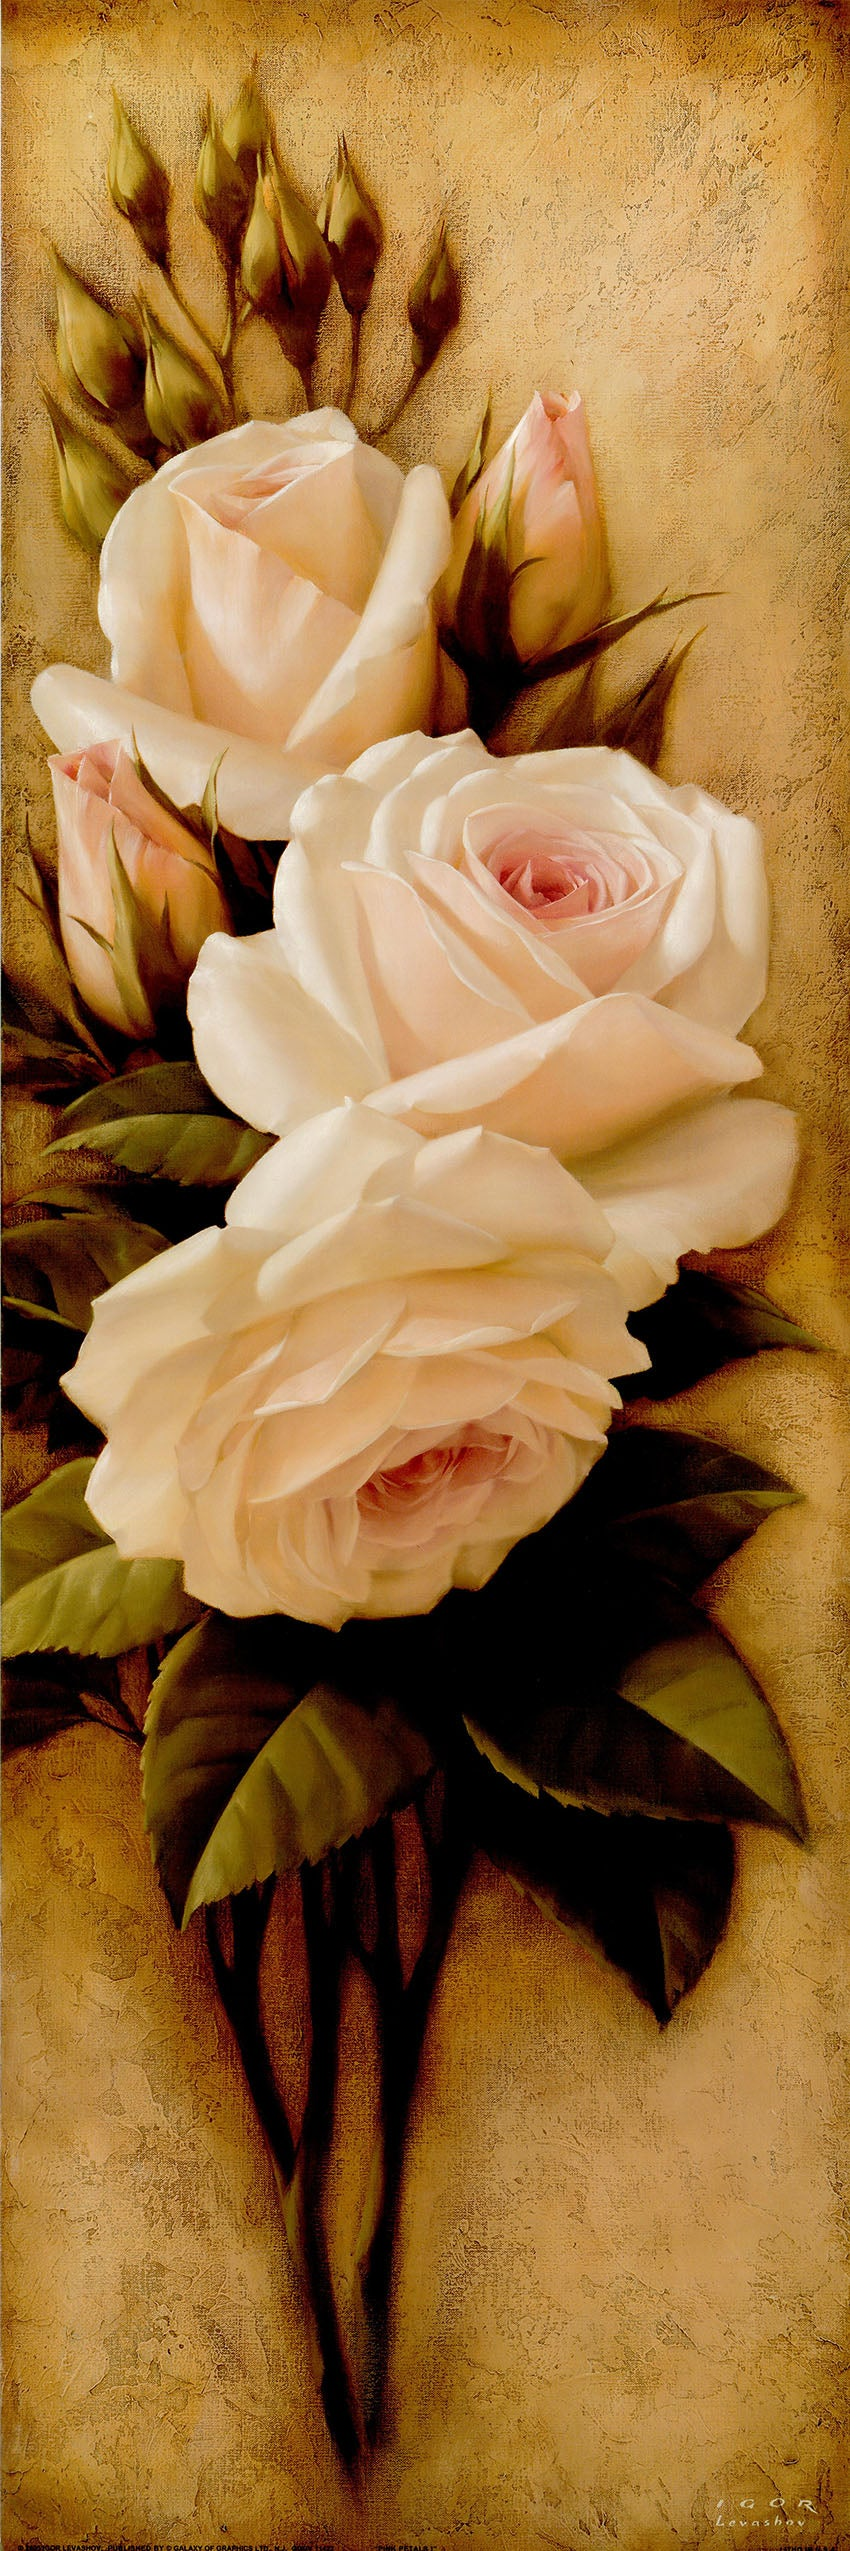 Canvas or Paper Print of Roses